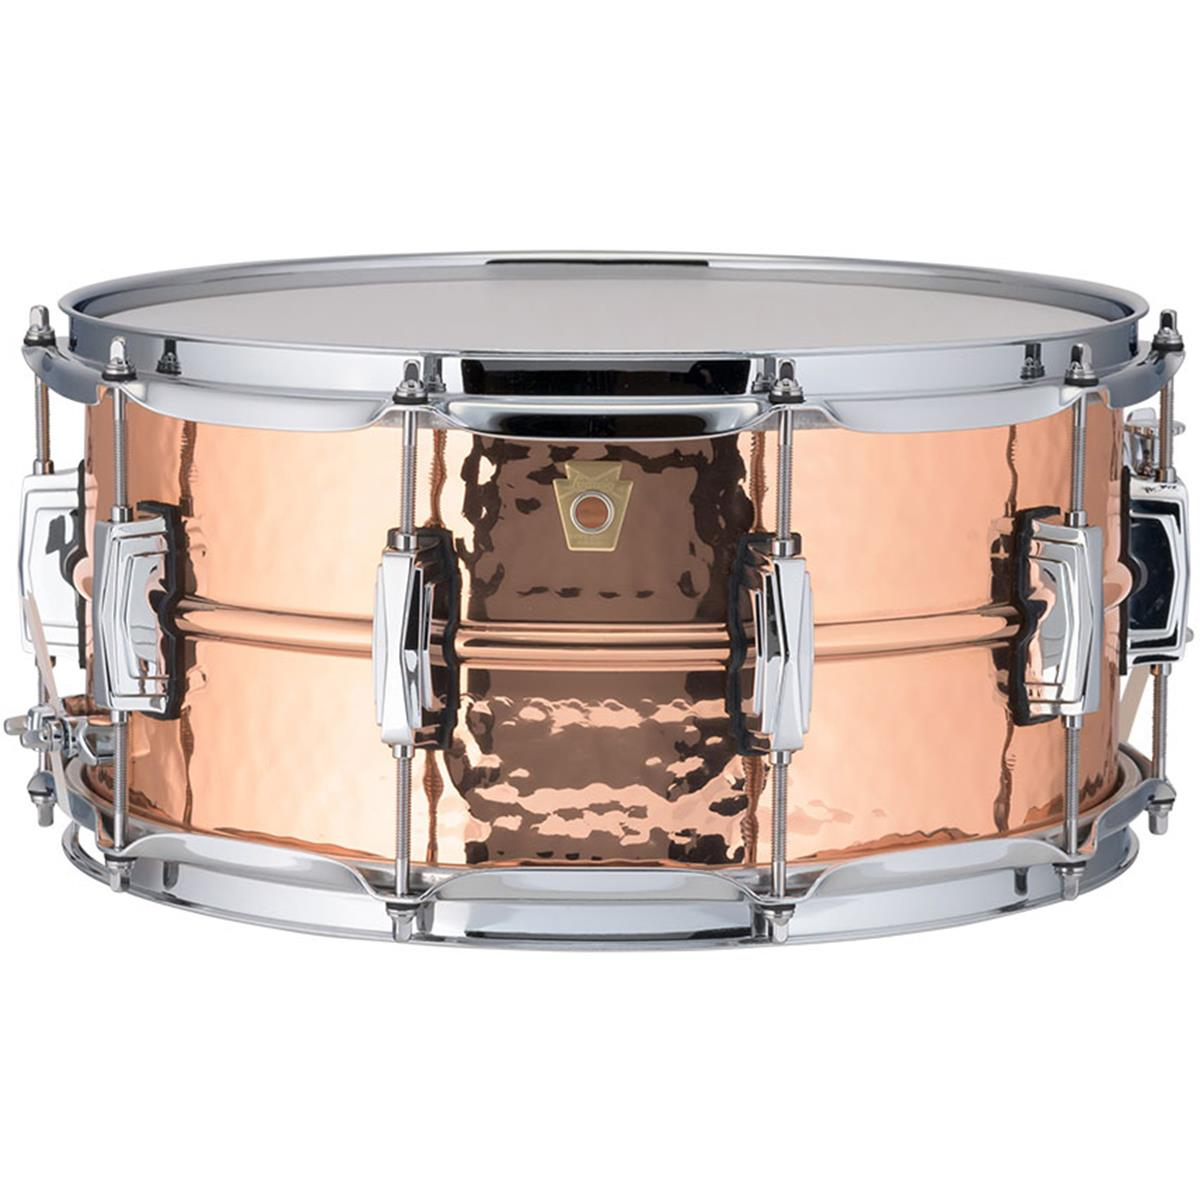 LUDWIG LC662K - Ludwig rullante 6.5x14 Phonic Copper - Hammered Finish - Blocchetti Imperial